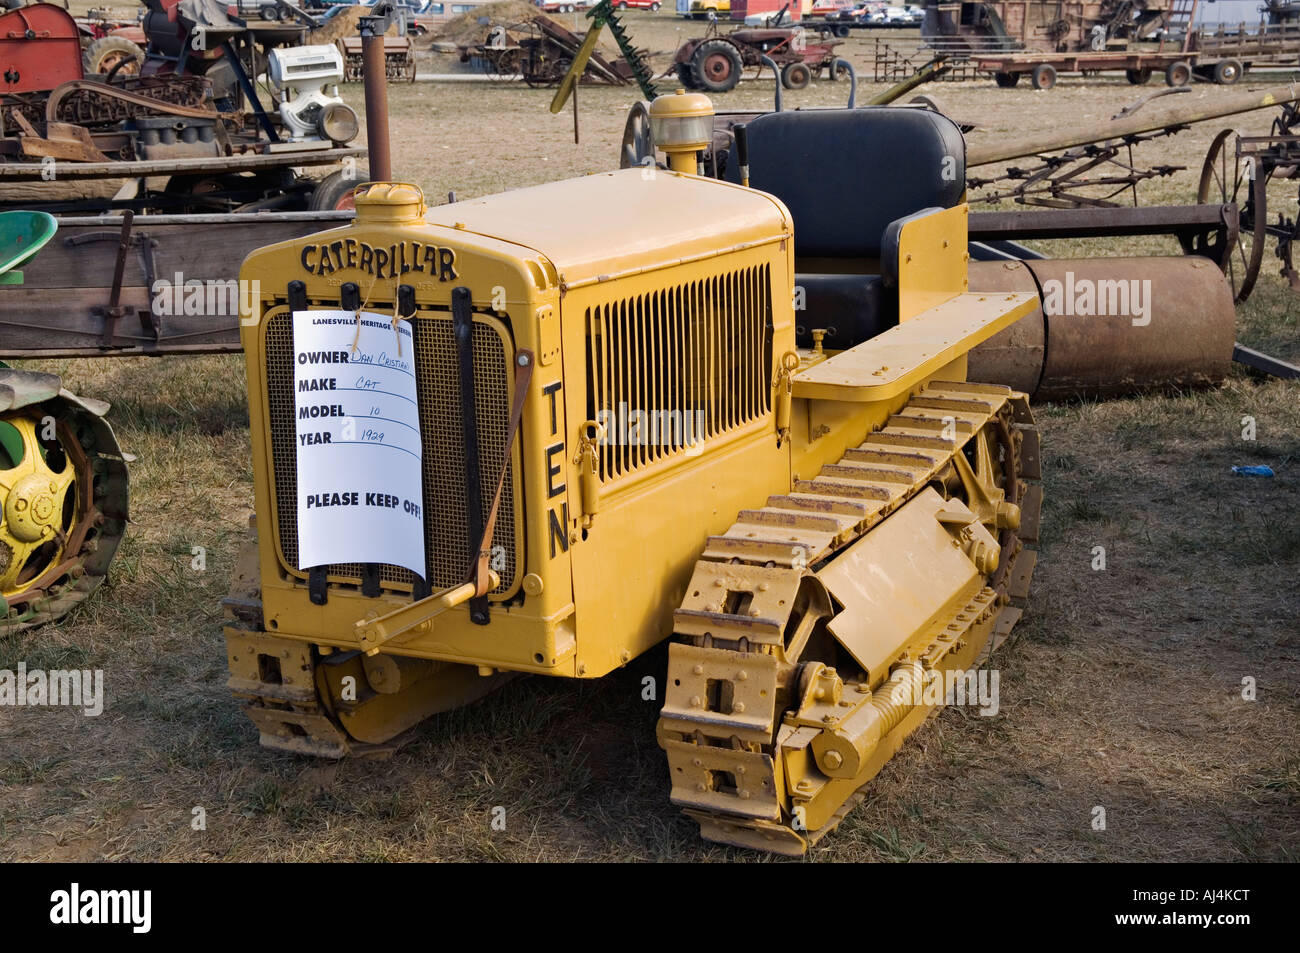 10 Ton Fork Lift Cat : Antique caterpillar model tractor on display at